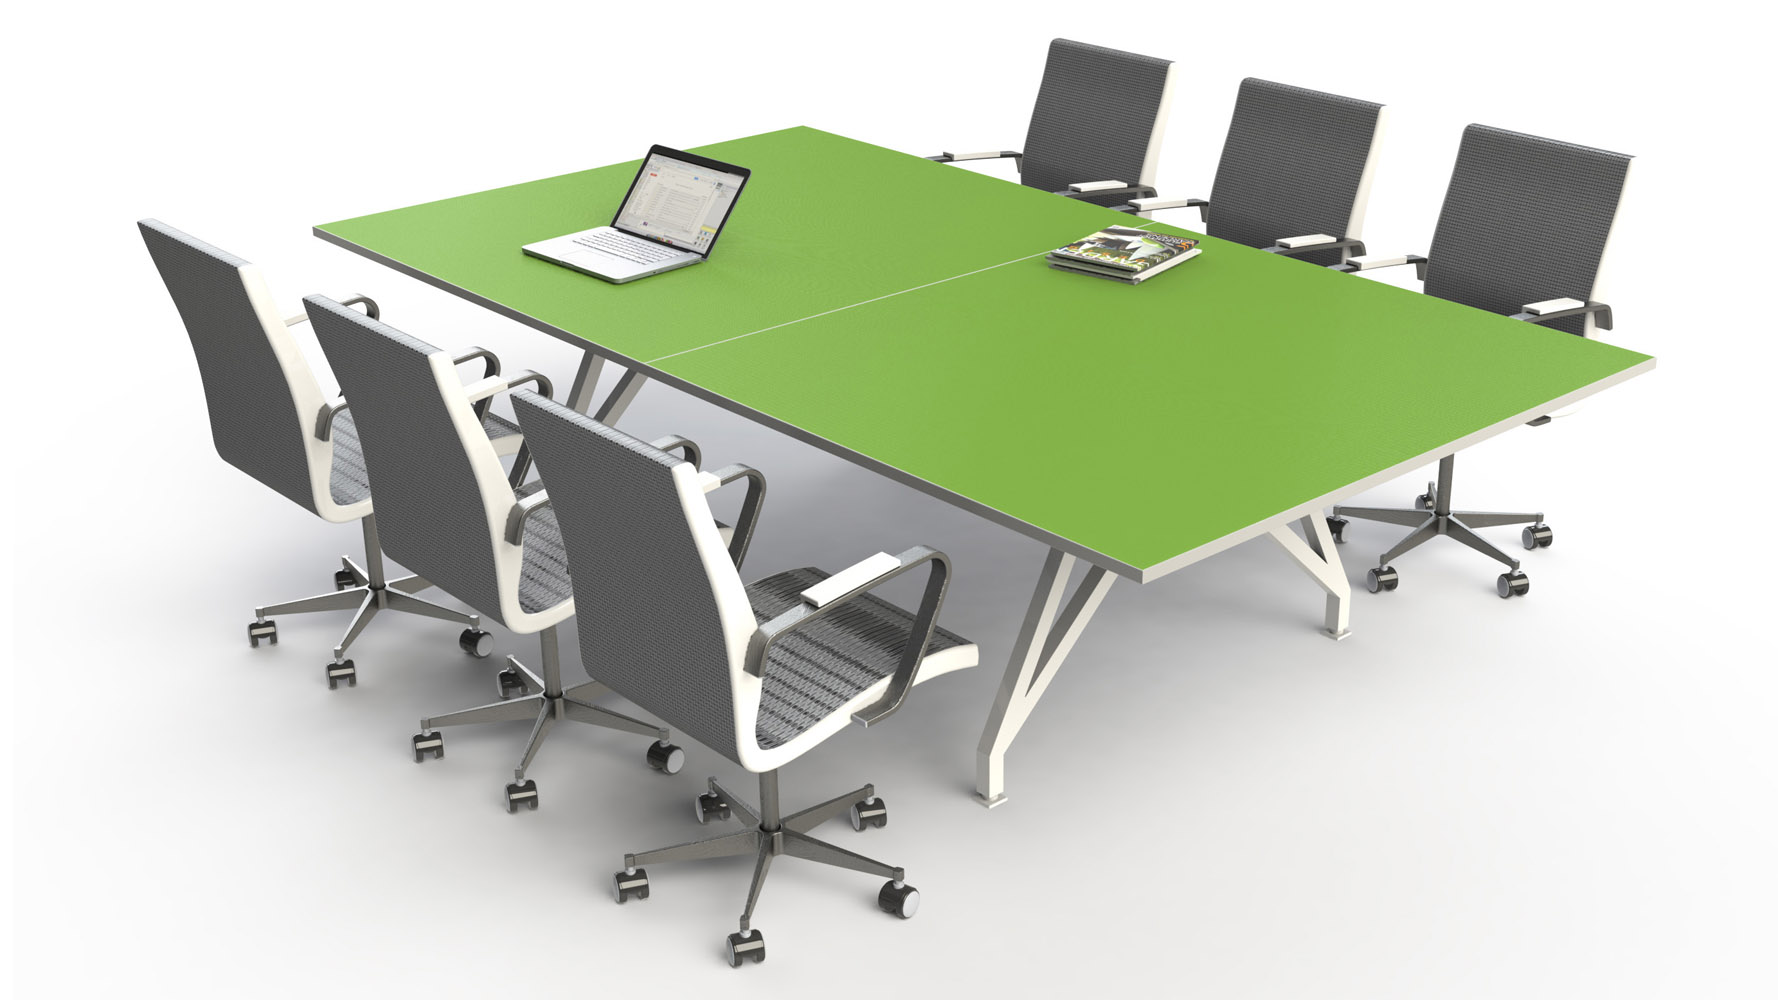 scale  eyhov sport conference table  zuri furniture - eyhov sport conference table